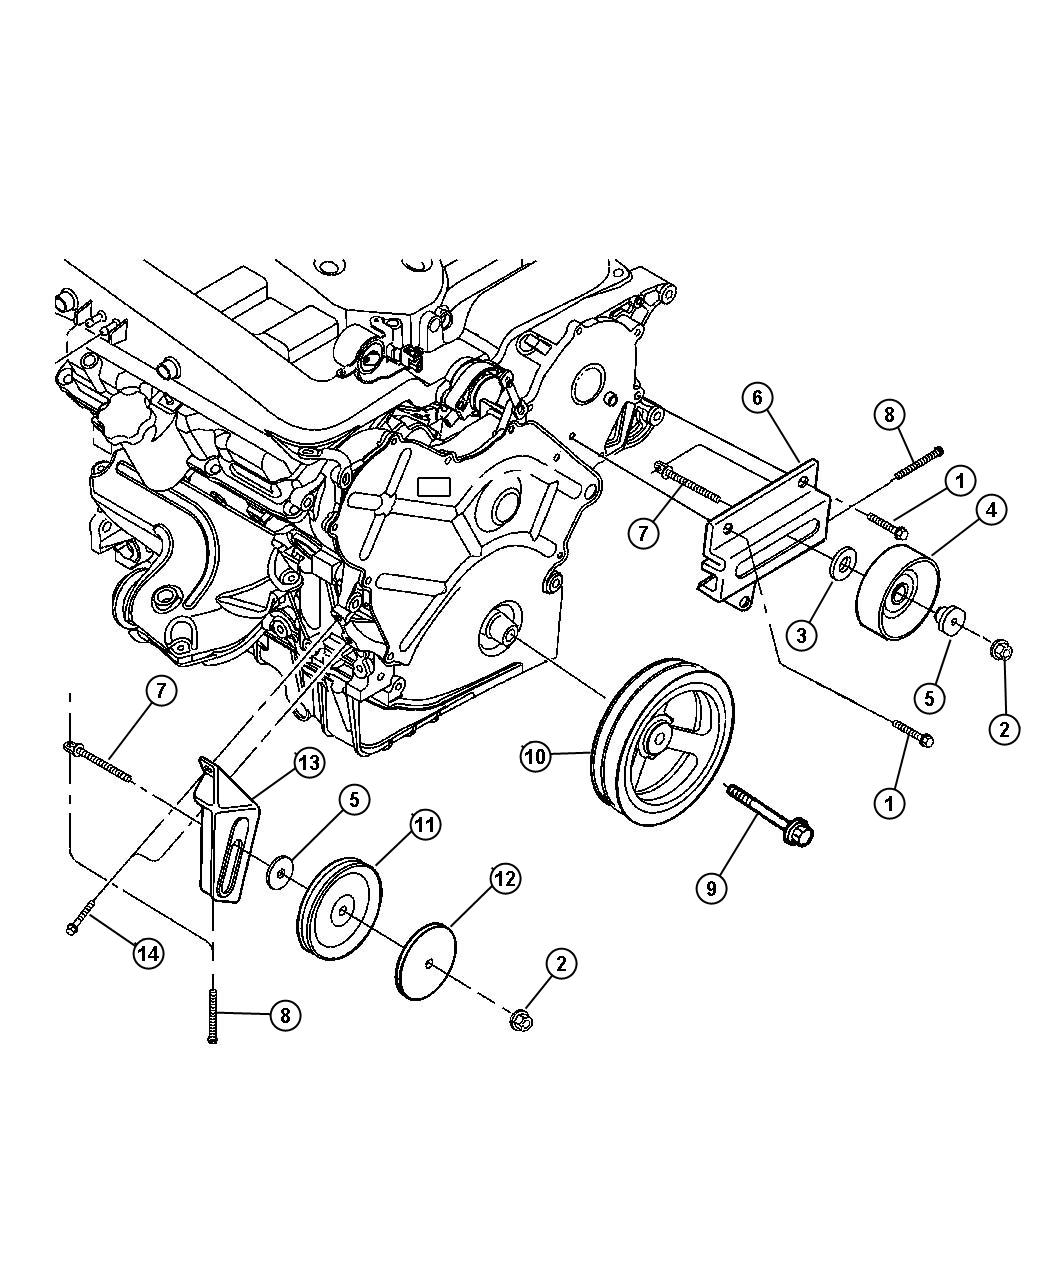 1999 dodge intrepid 2 7 engine diagram  dodge  auto wiring